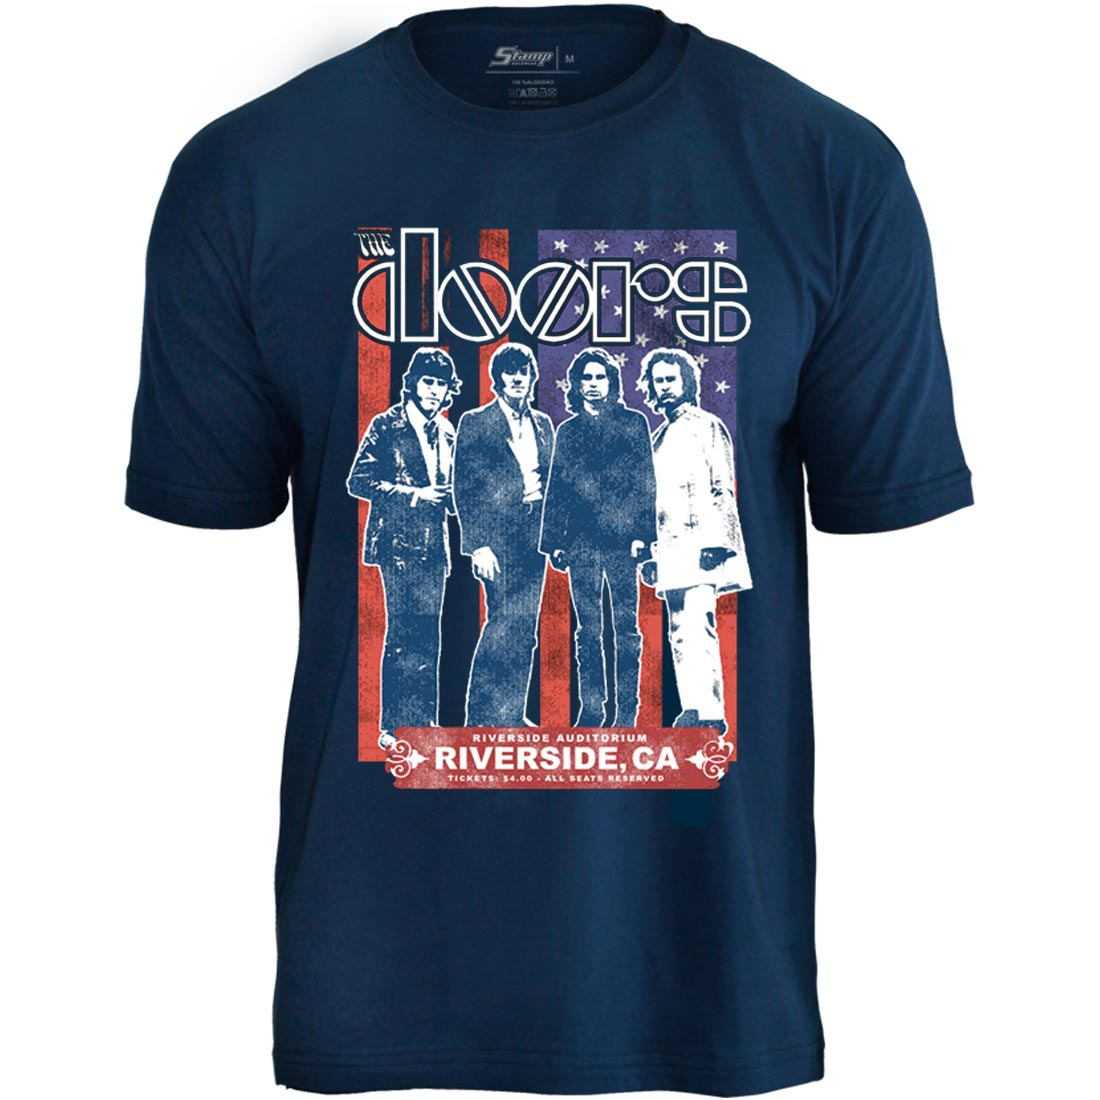 Camiseta The Doors Riverside Auditorium